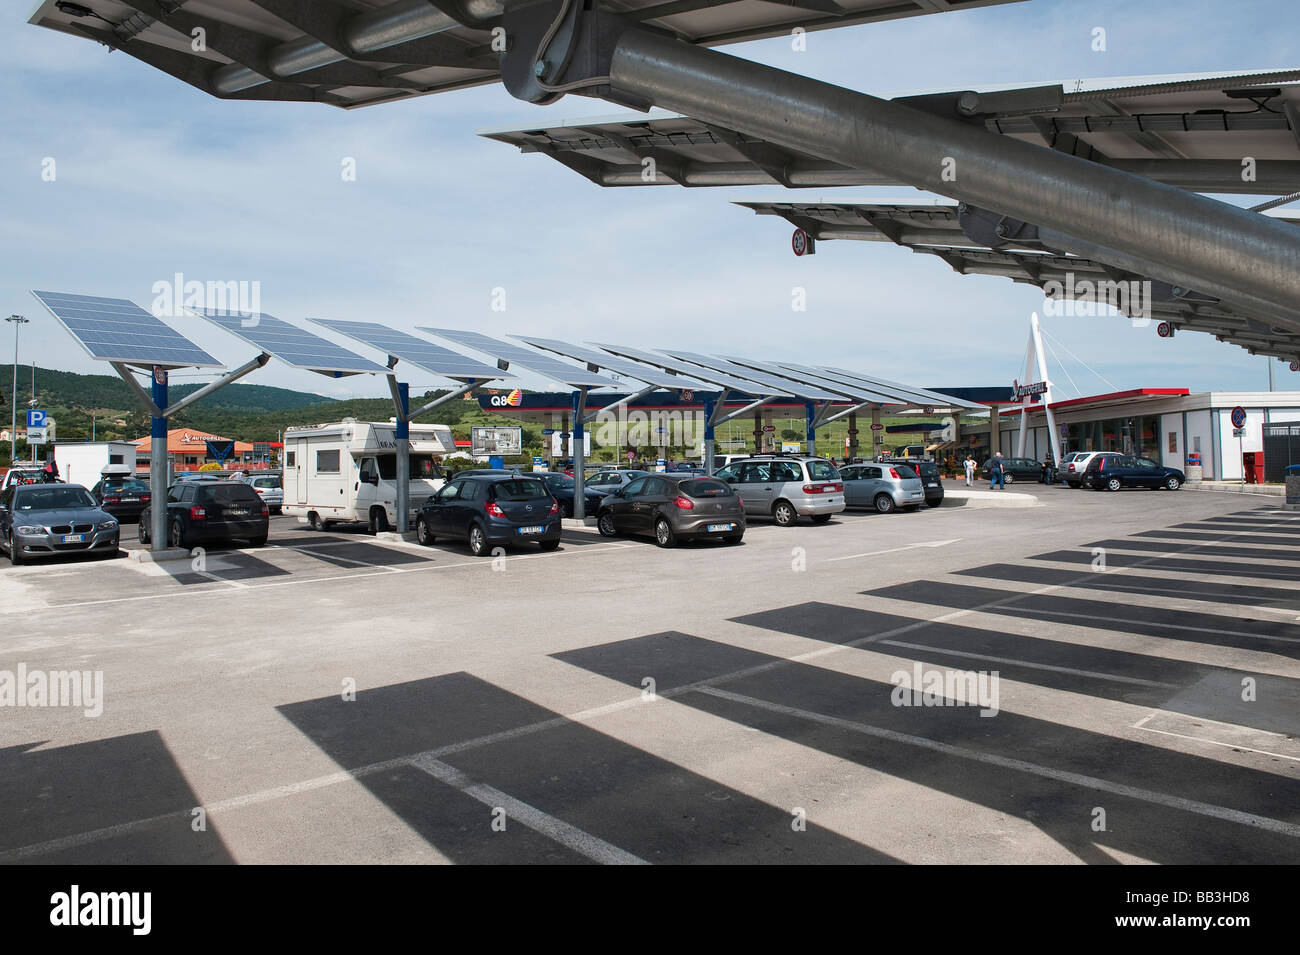 Italy. Solar panels used to shade parked cars and to generate electricity at an Italian motorway services - Stock Image